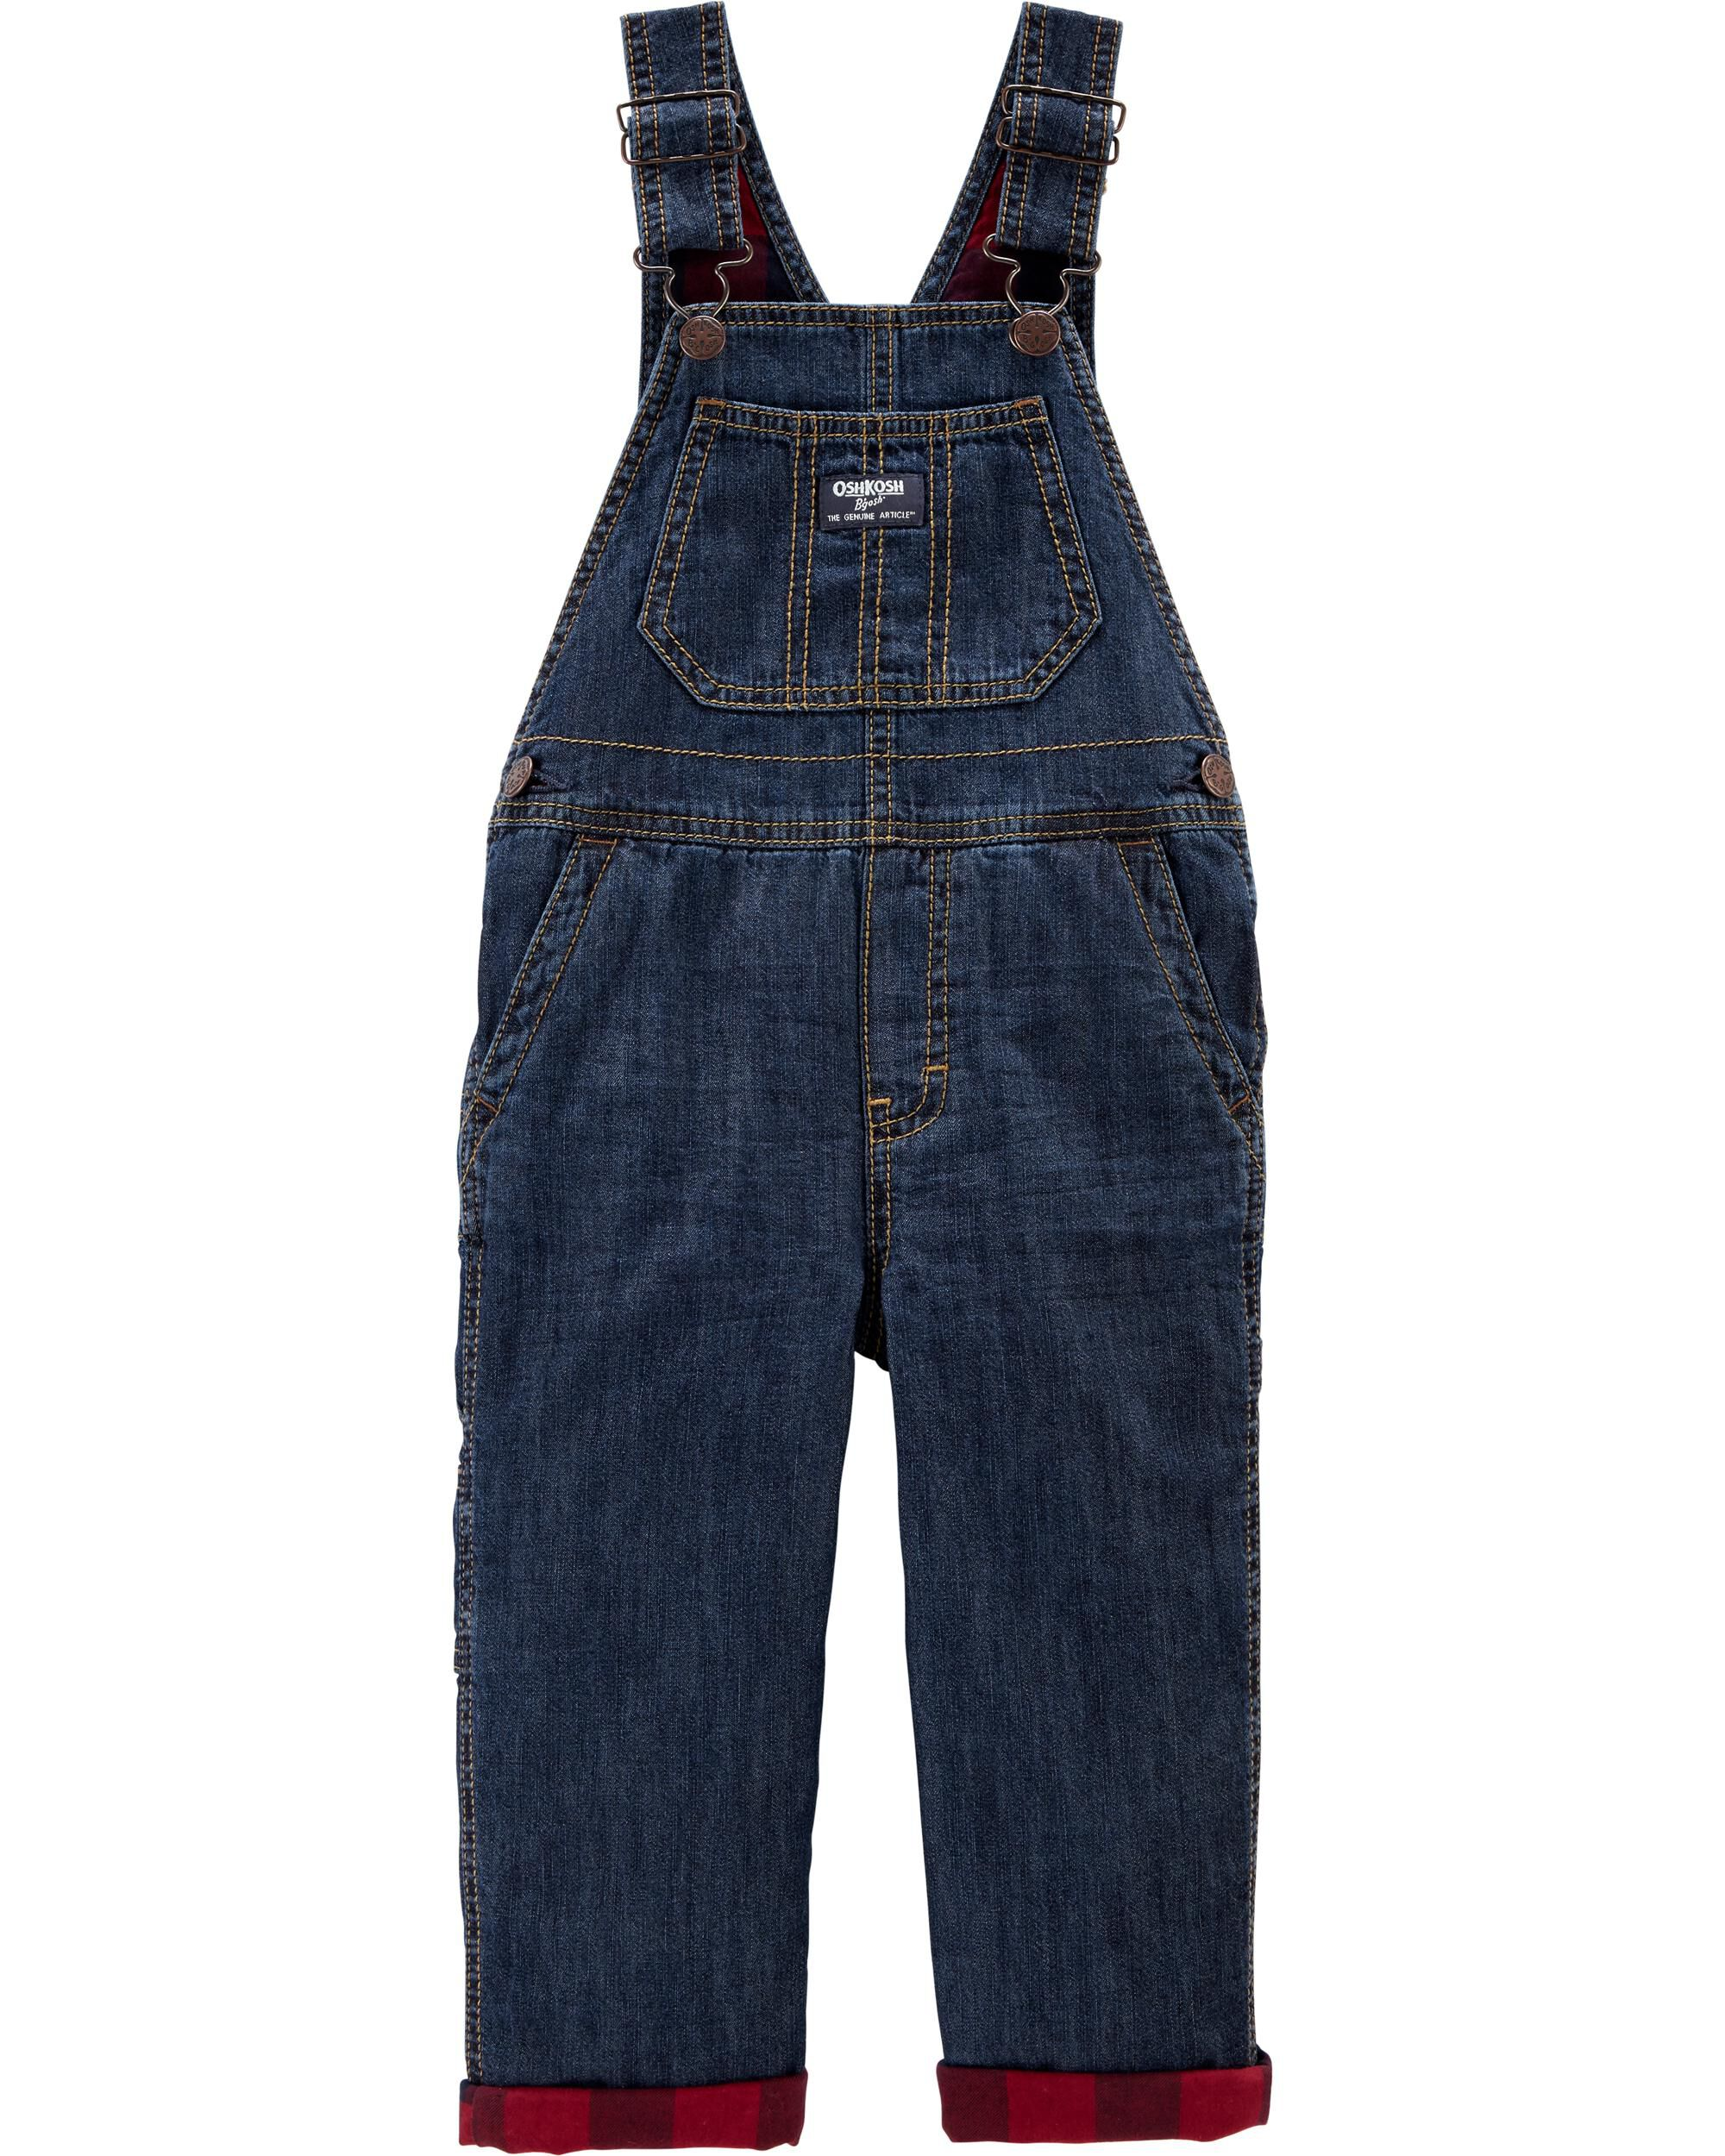 New OshKosh Girls Blue Jean Denim Star Buffalo Lined Cuff Overalls 12 24 3 4 5T